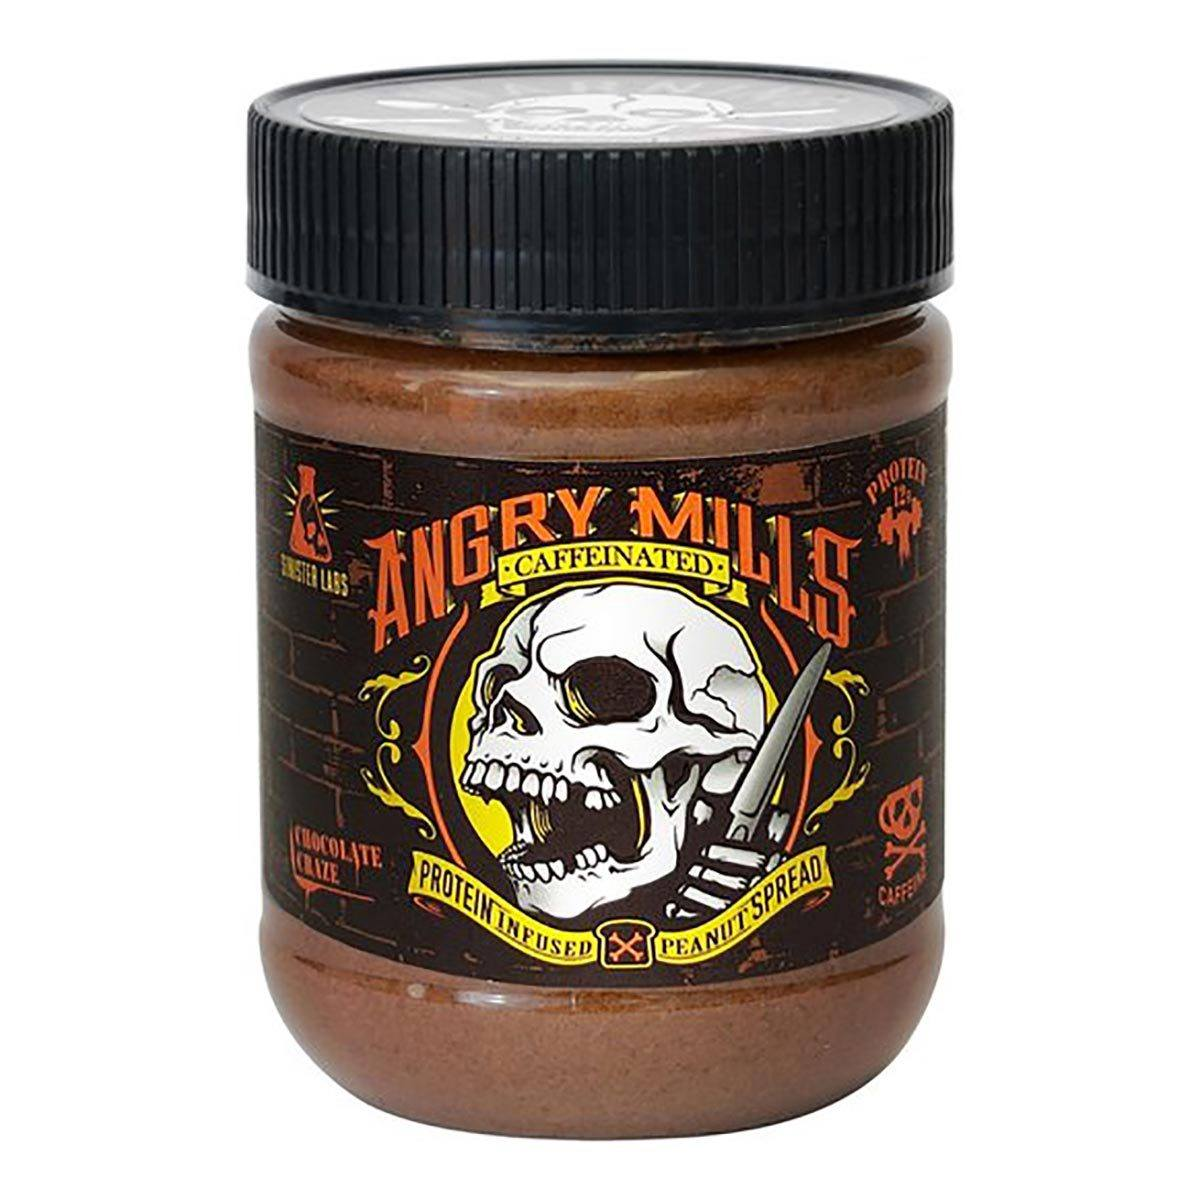 Sinister Labs Angry Mills Caffeinated Protein Infused Peanut Butter Spread Chocolate Craze Foods & Snacks Sinister Labs  (1059325444139)